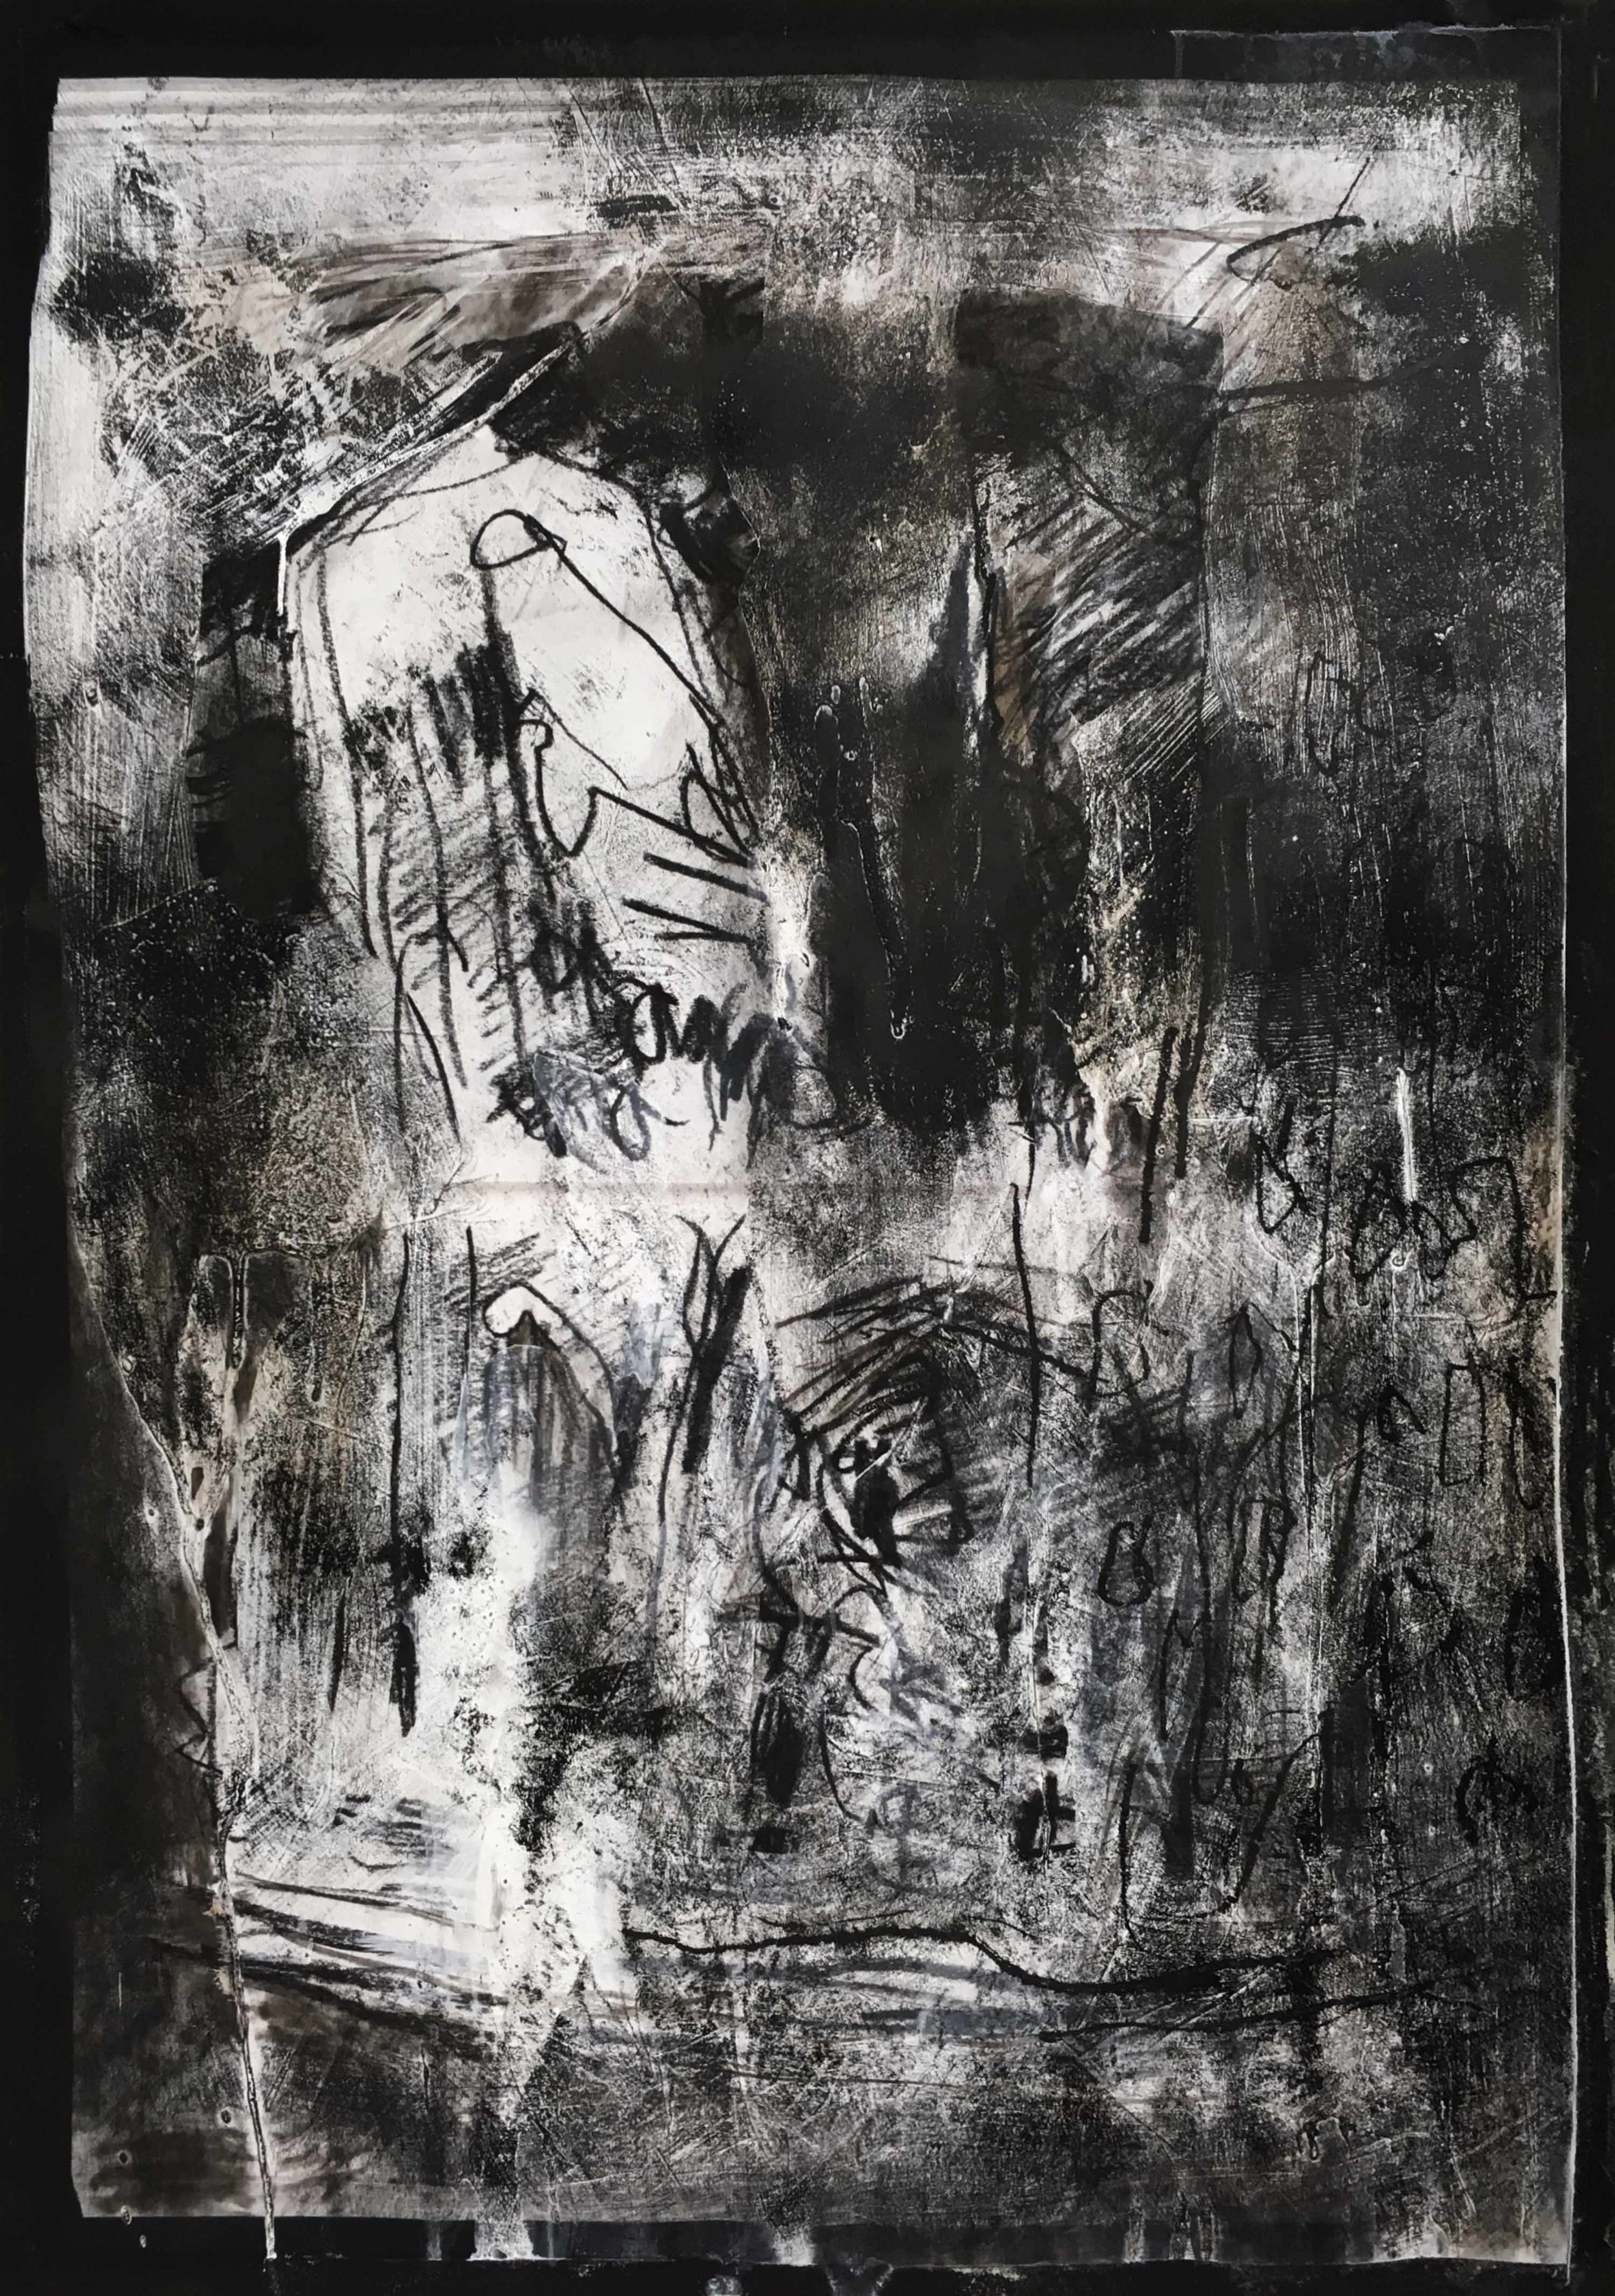 Near Büschingstraße, Arthur Laidlaw, Laser toner, acrylic primer, etching ink, charcoal, and pencil on paper, 2018